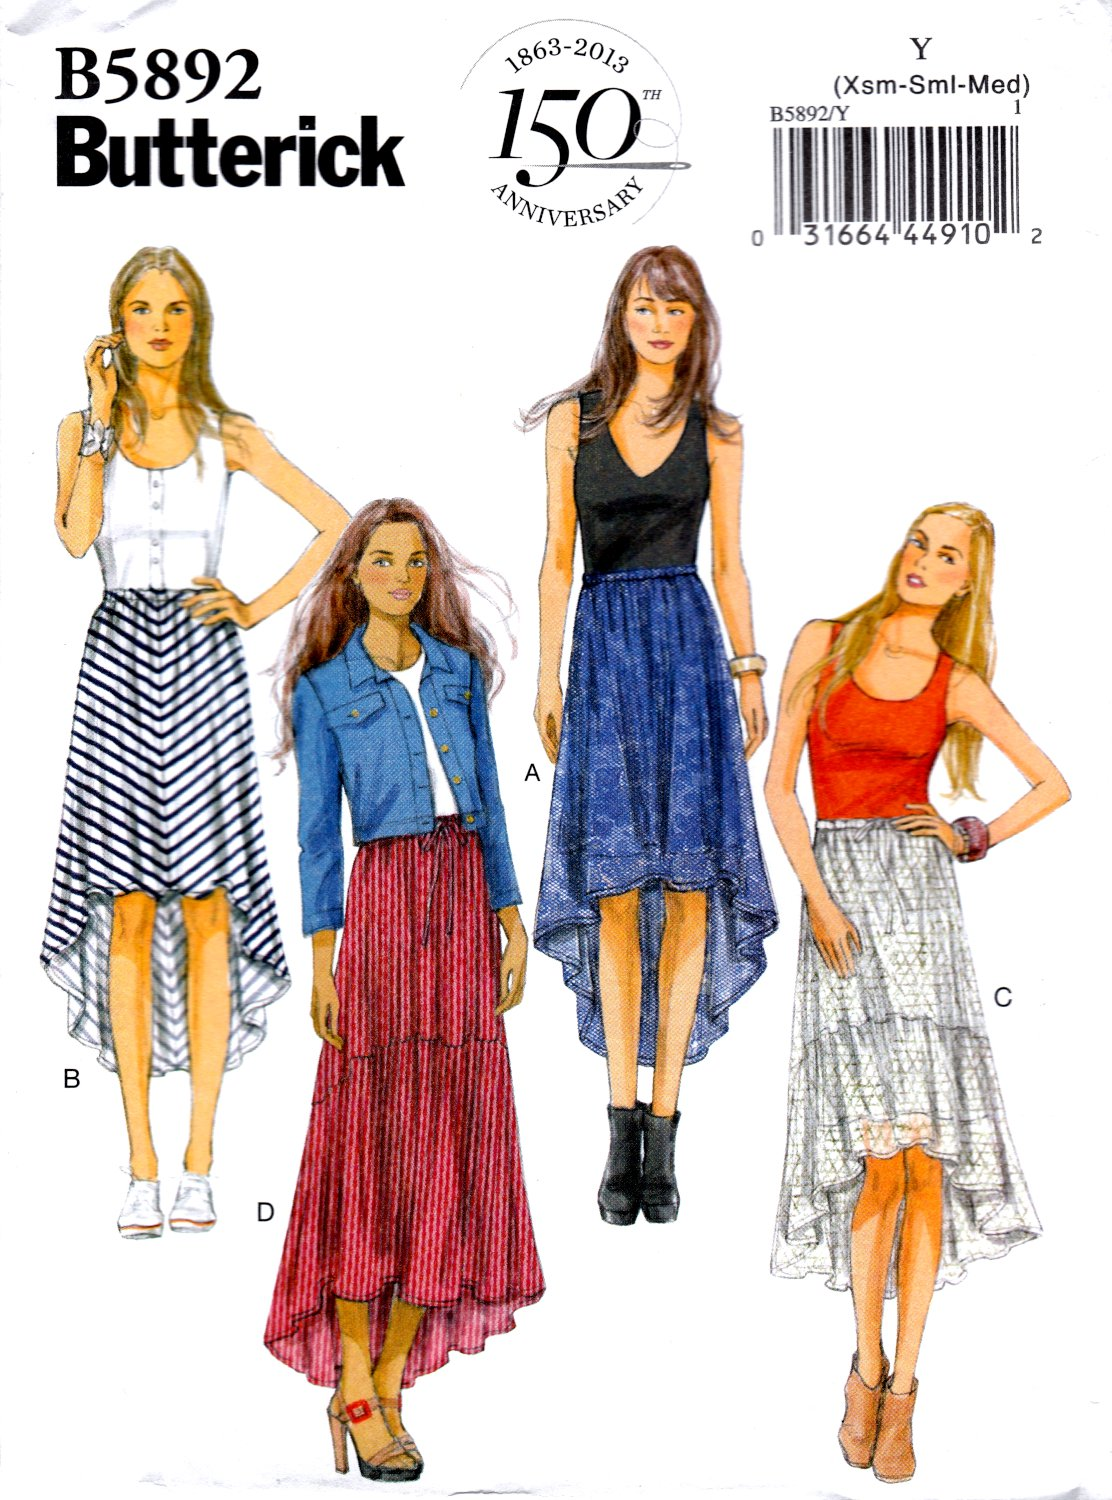 Butterick B5892 Misses Skirts High-Low Hem Loose Fitting Sewing Pattern Sizes Xsm-Sml-Med